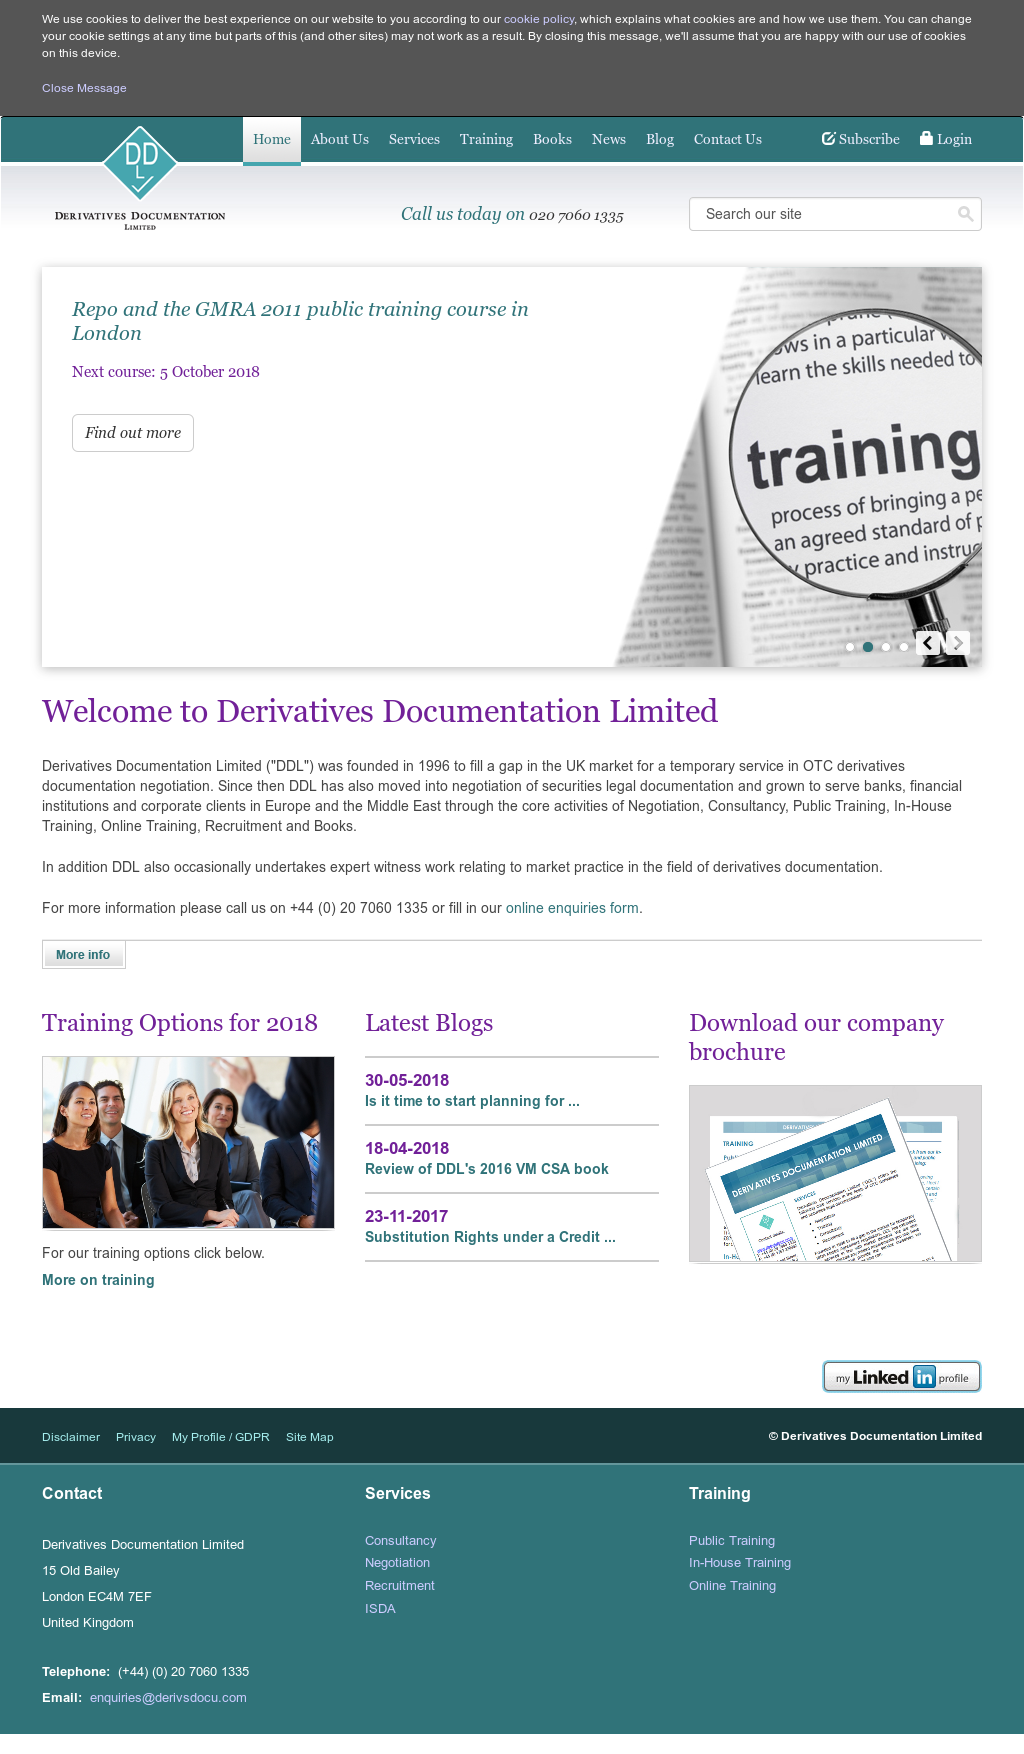 Derivatives Documentation Competitors, Revenue and Employees